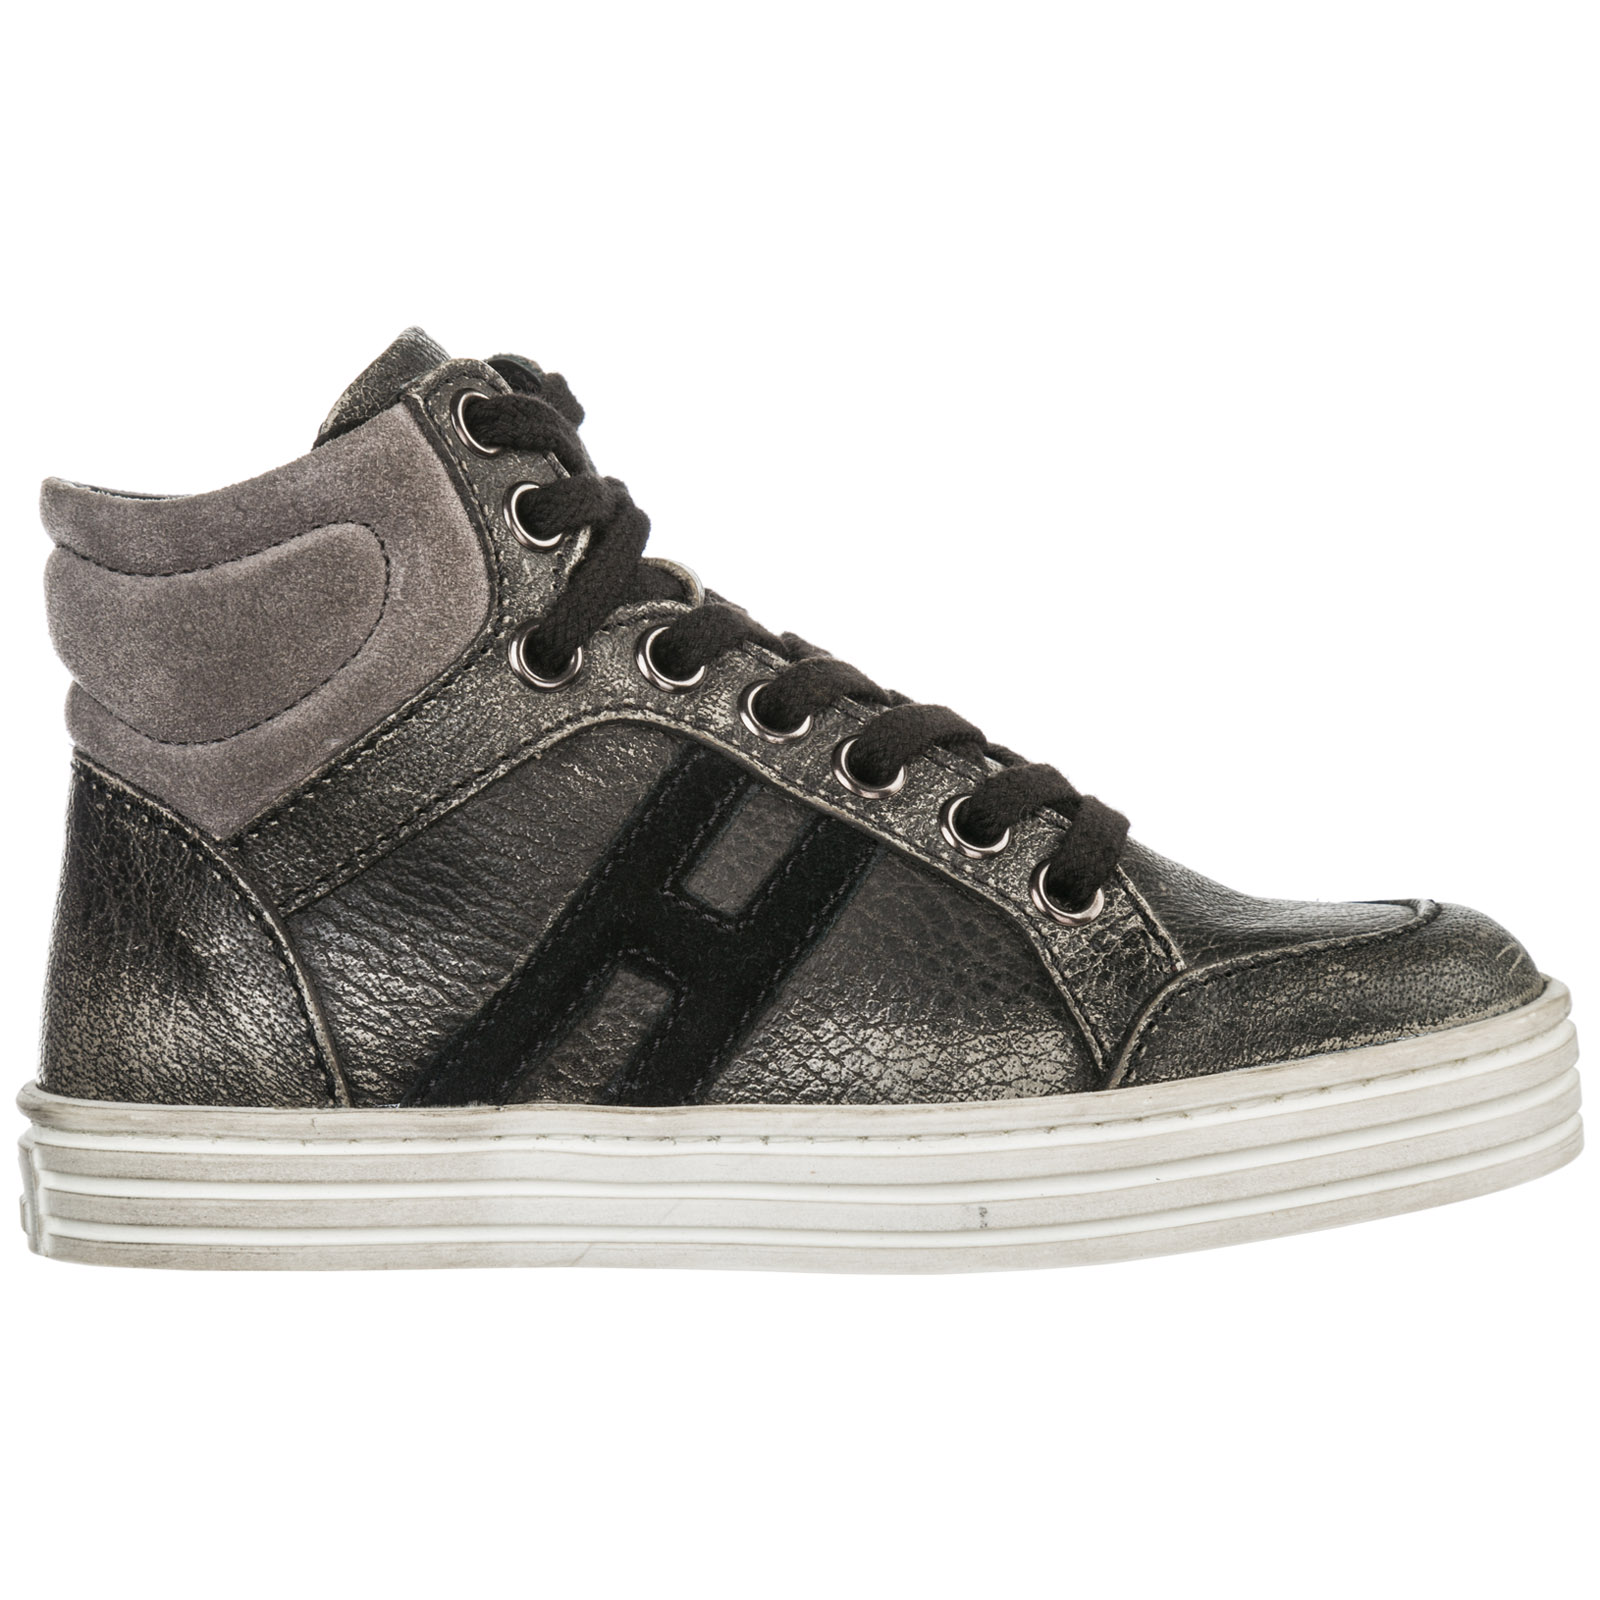 100% authentic most popular finest selection High-top sneakers Hogan Rebel r141 HXC141072827ER9032 grigio ...